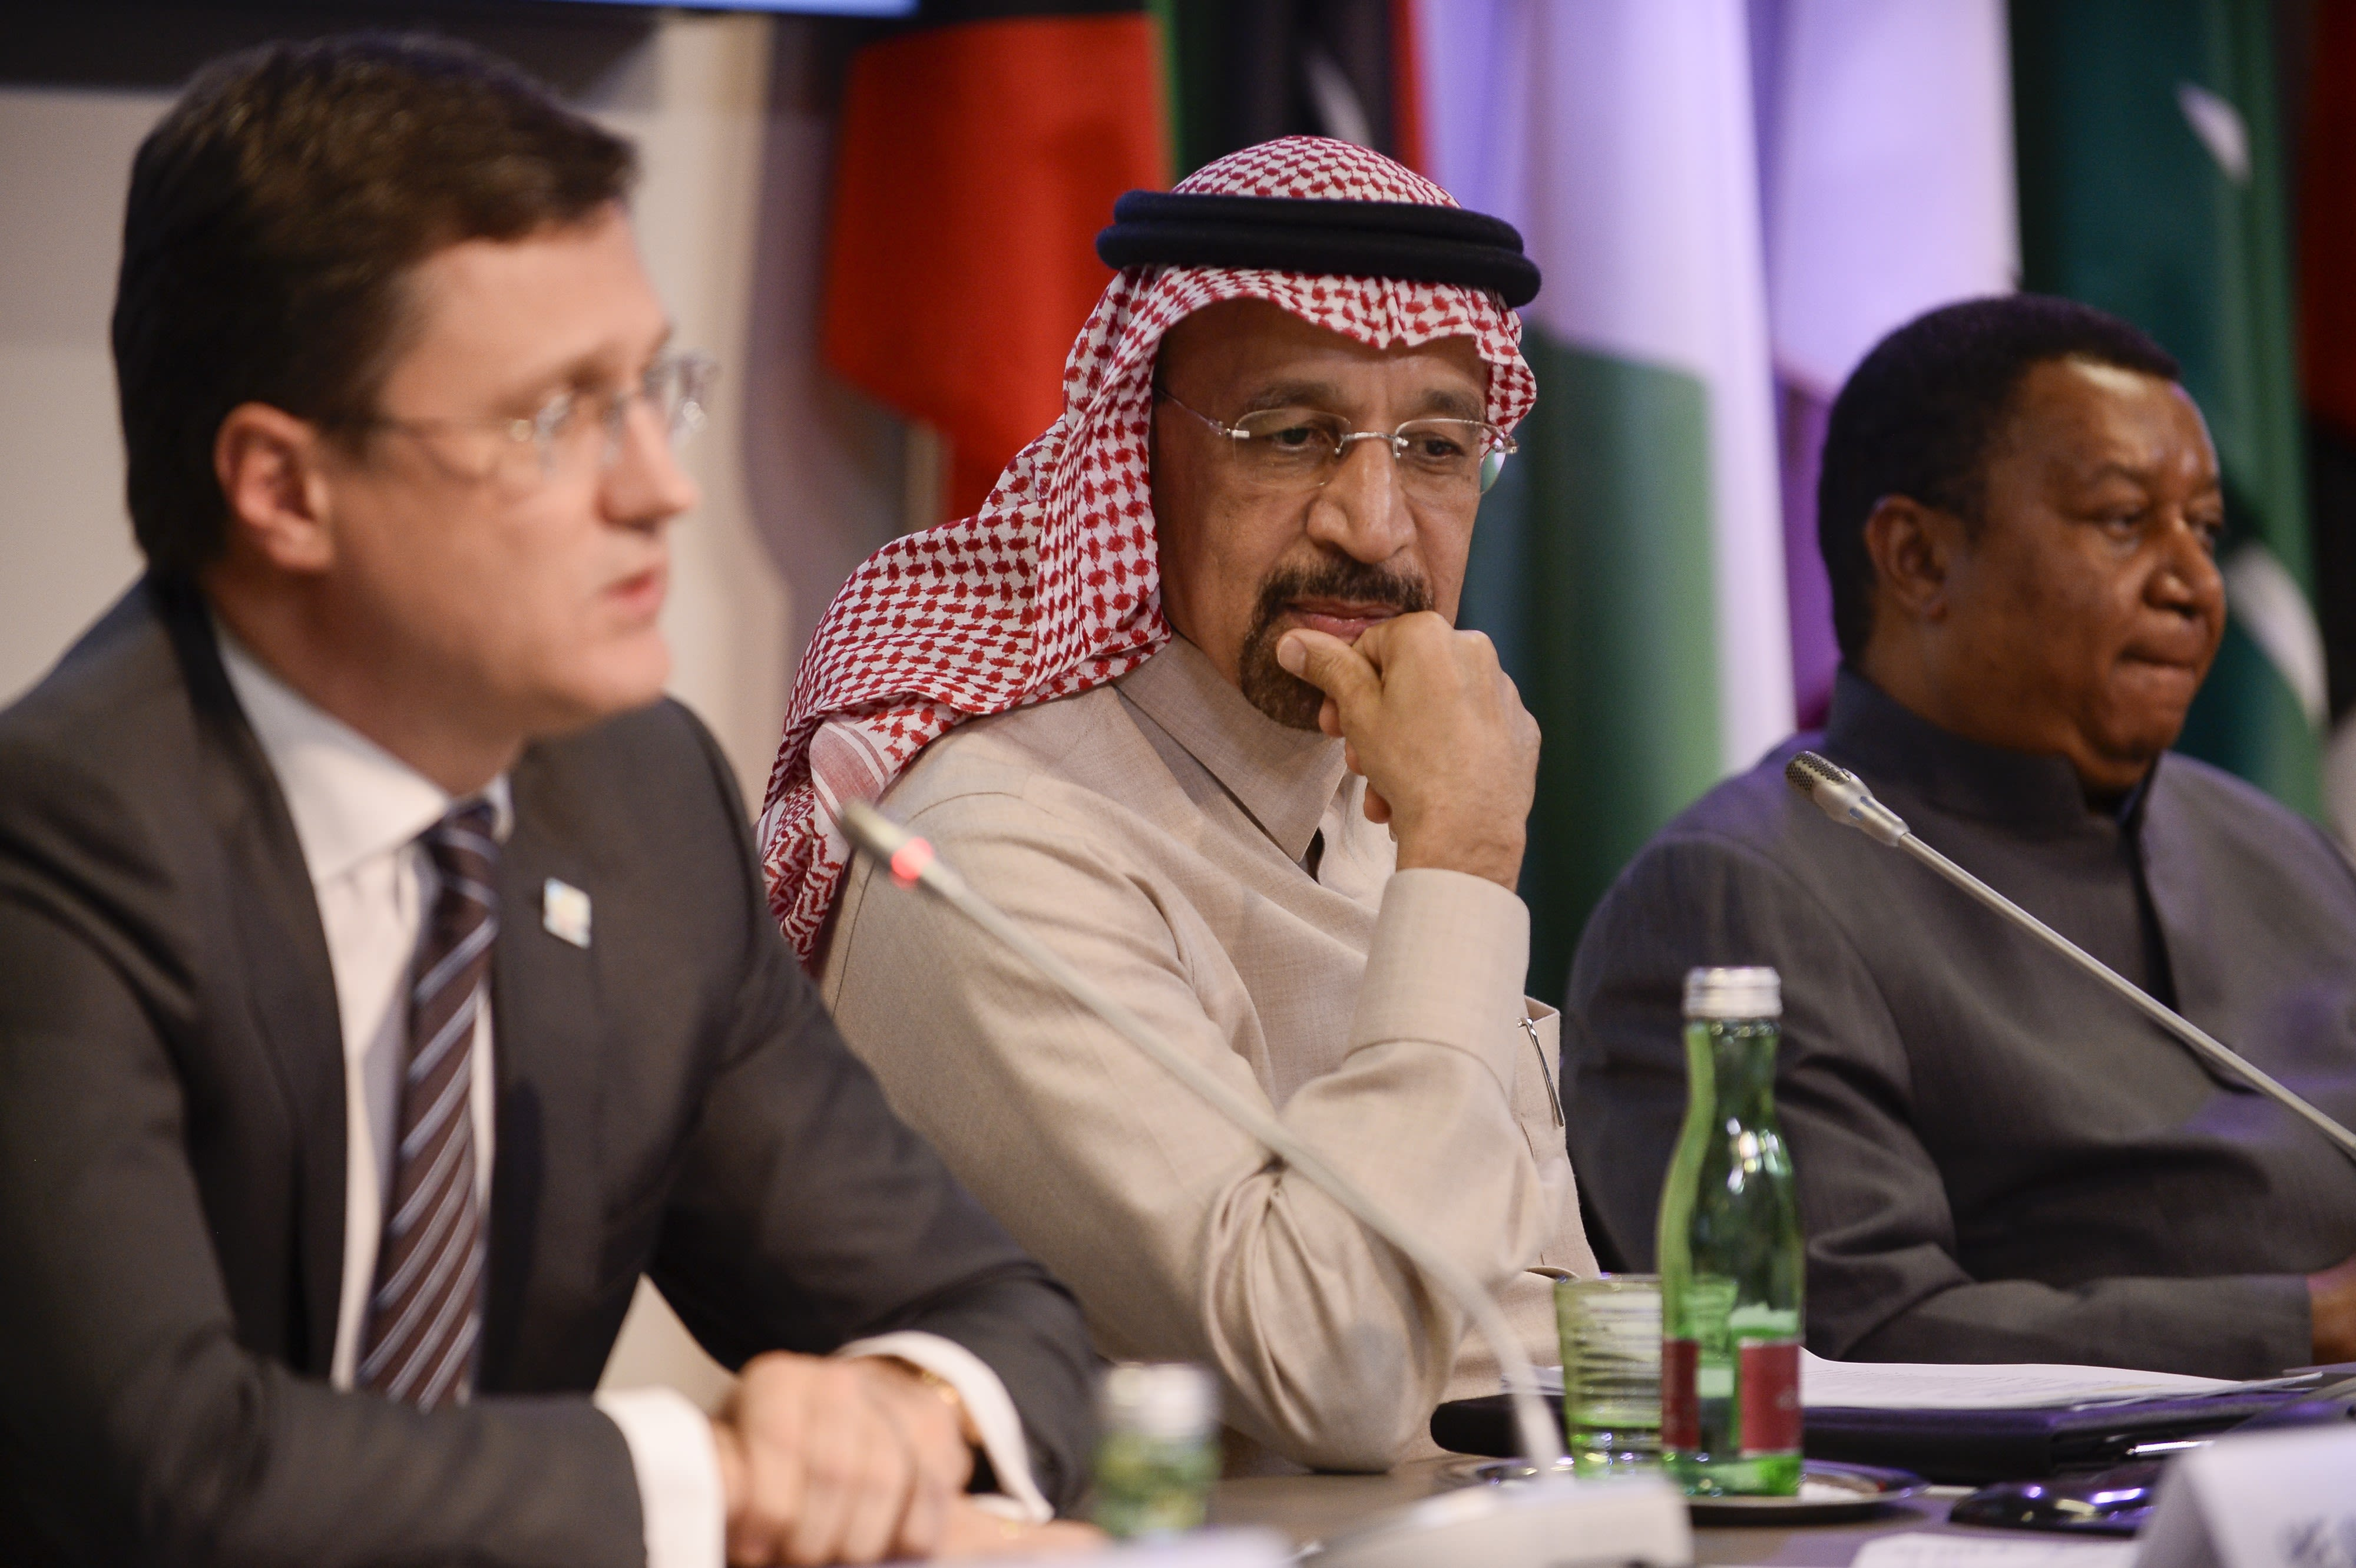 Oil Prices Drop Before the G-20 Summit, OPEC to Hold a Meet